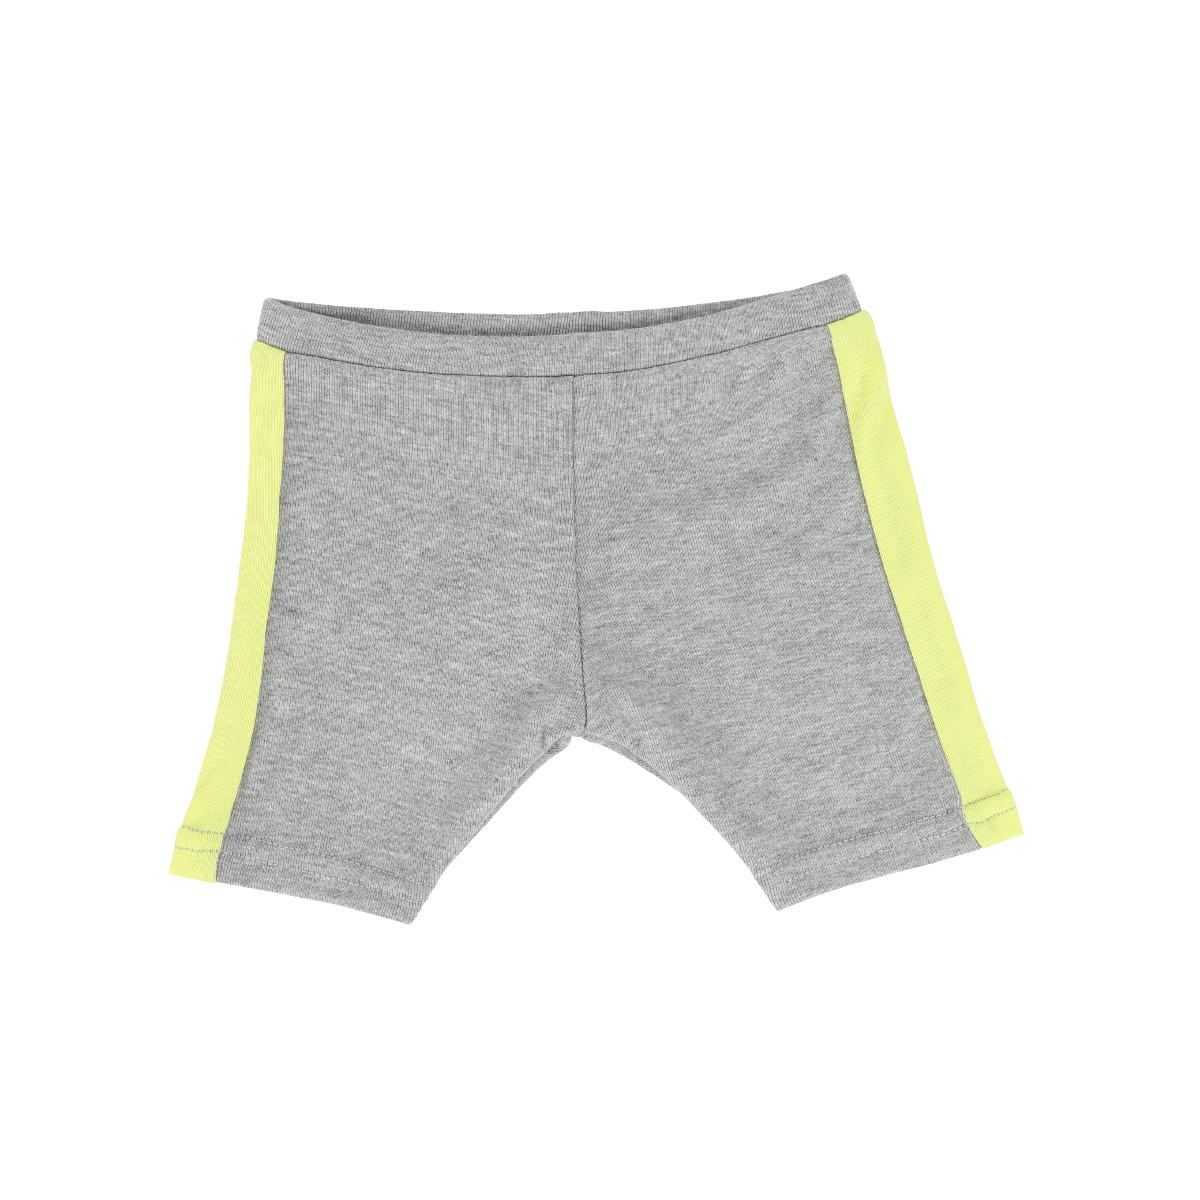 Analogie GreyNeon Linear Shorts